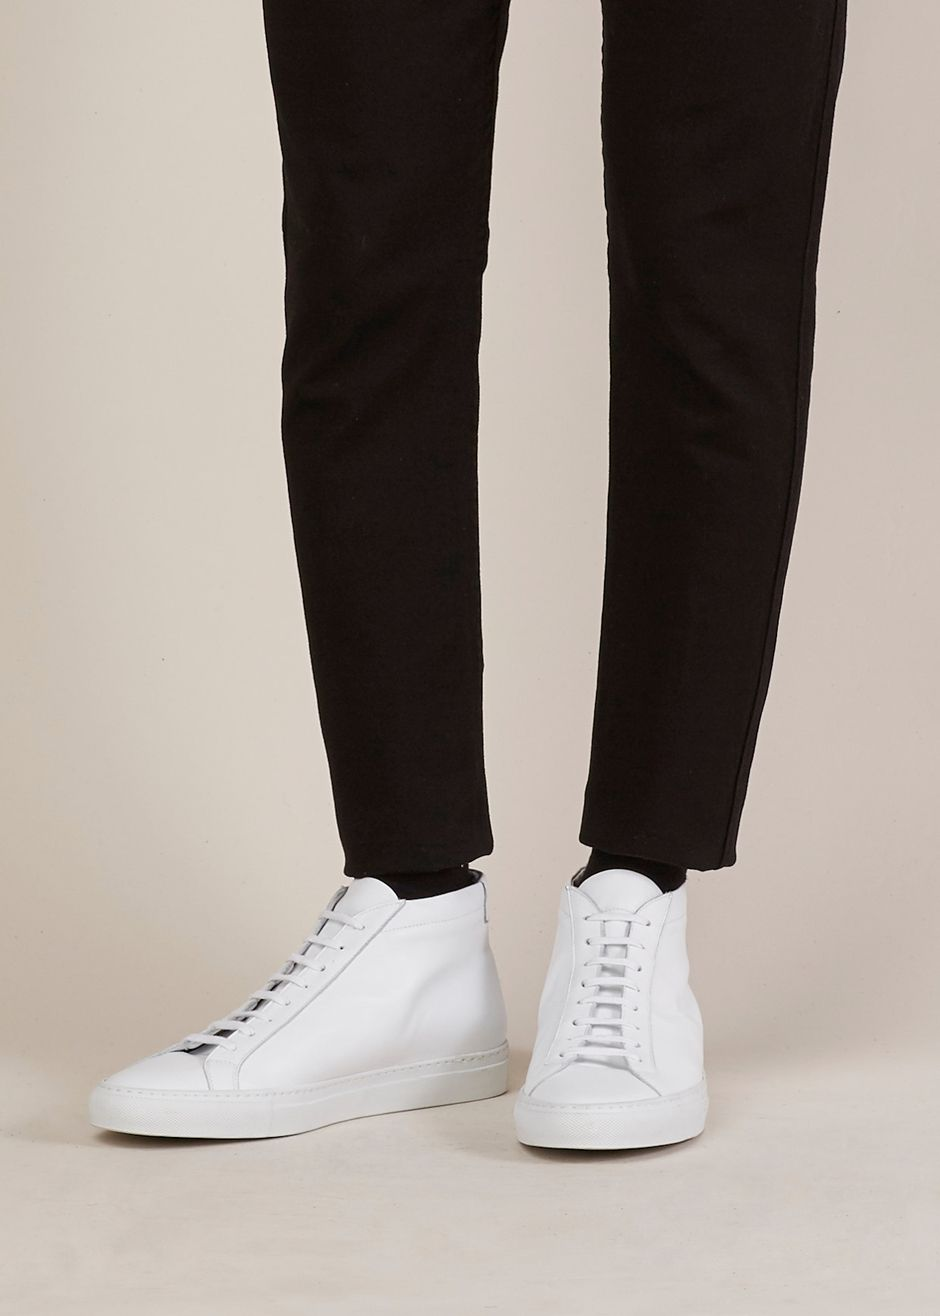 Common Sneakers Sneakers Projects By On Pin Werships Fashion PqnYt6IZ